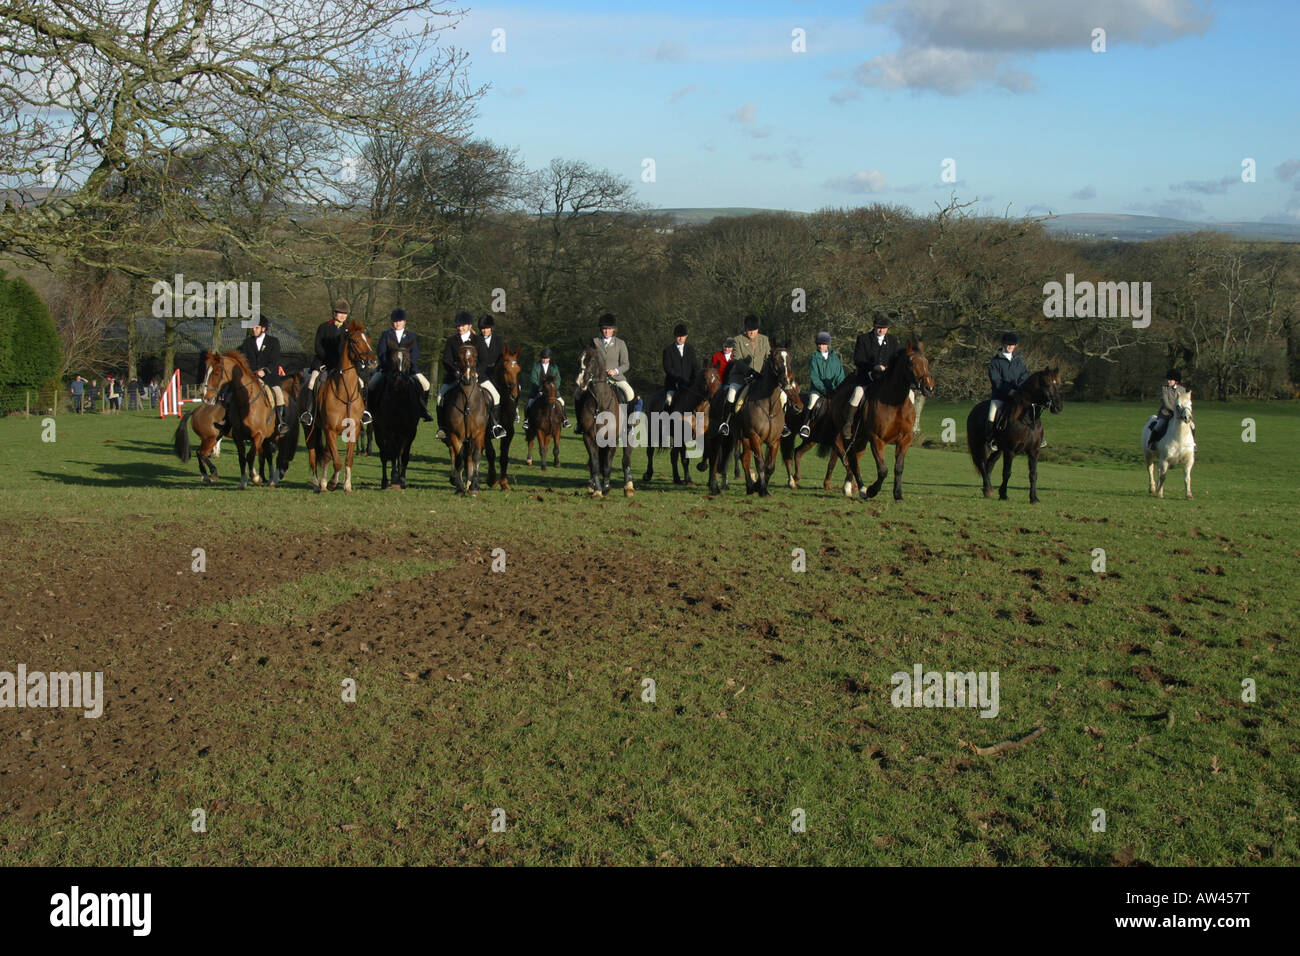 Fox Hunt Horses And Hounds Looking For Fox. Red Coat. Farm Land